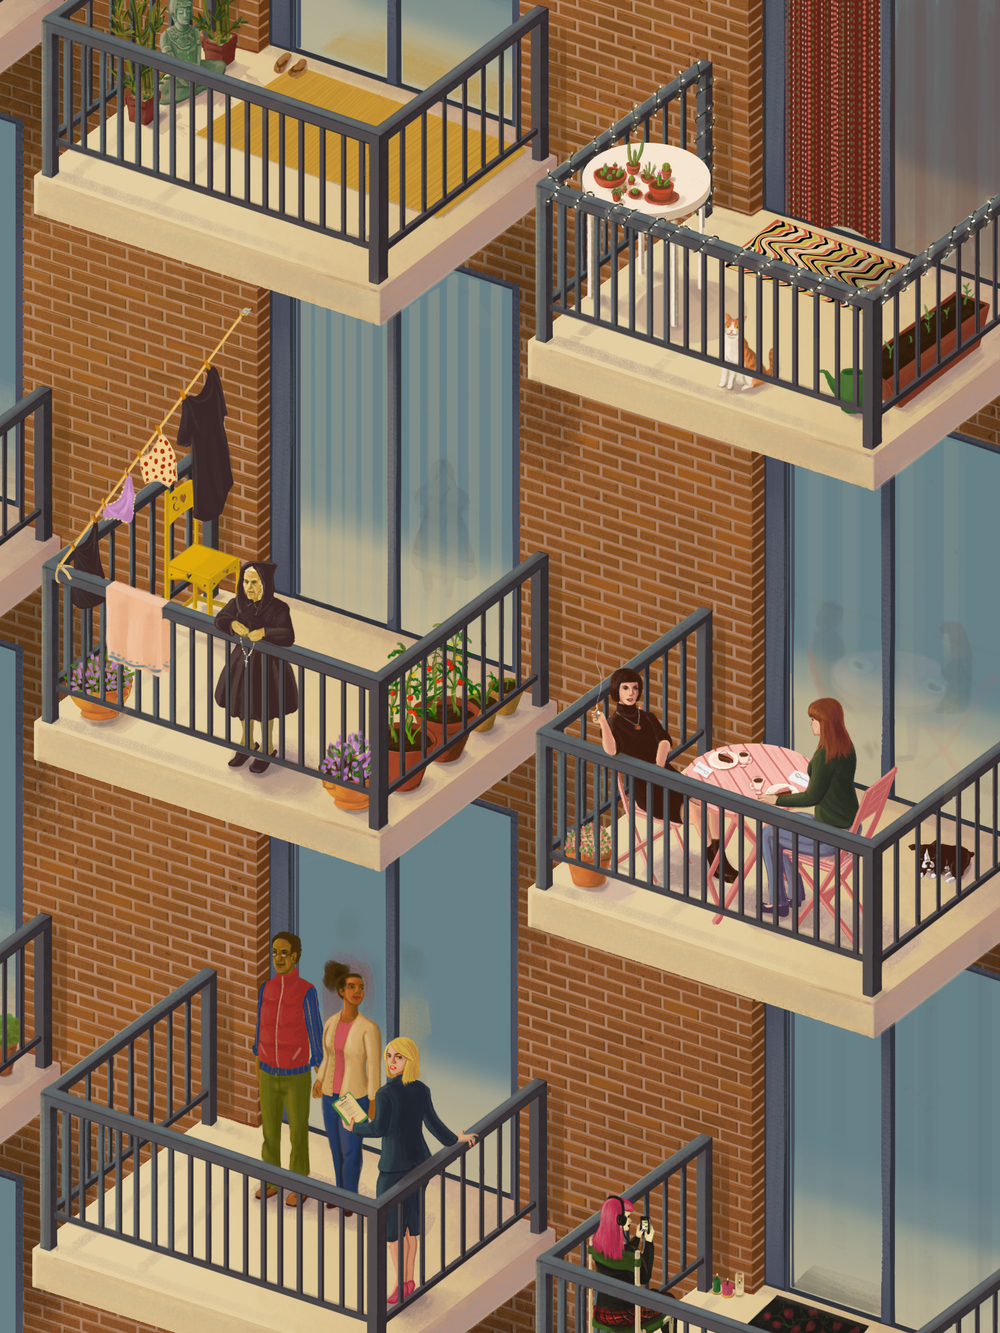 Apartment Living - A study of apartment buildings and the people who inhabit them.